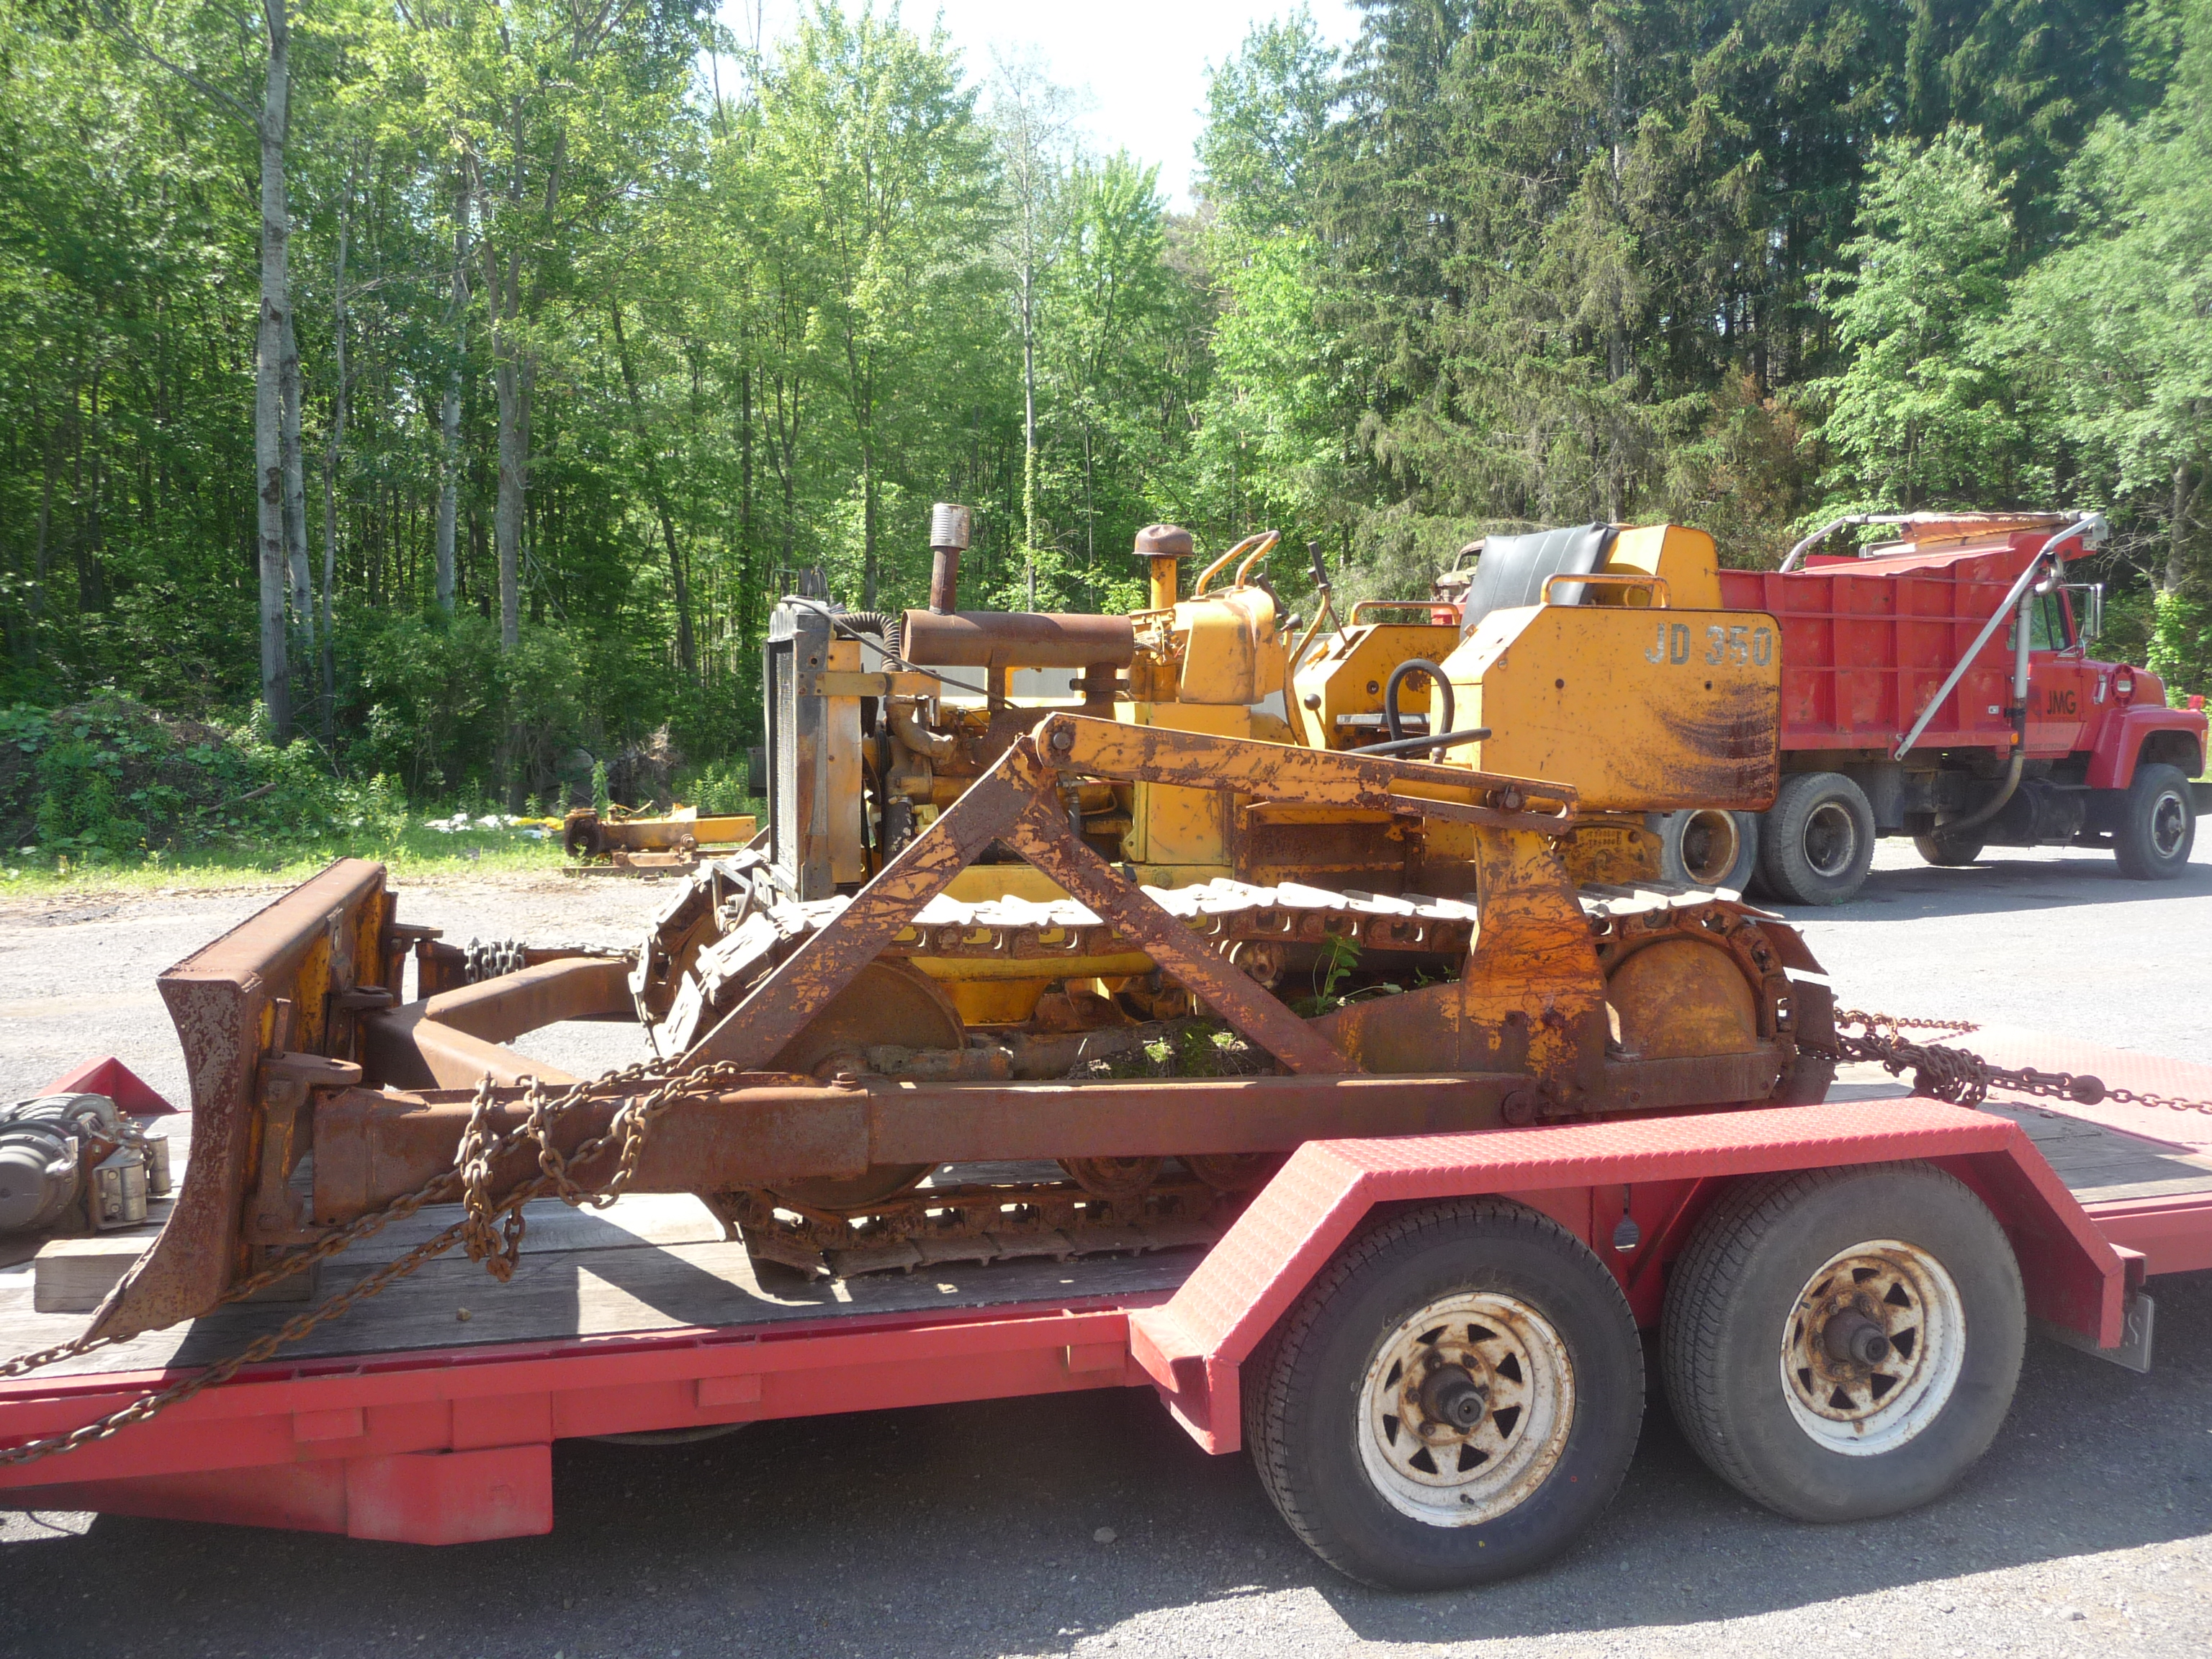 Hq Old Machinery Parts : Construction equipment salvage parts hq